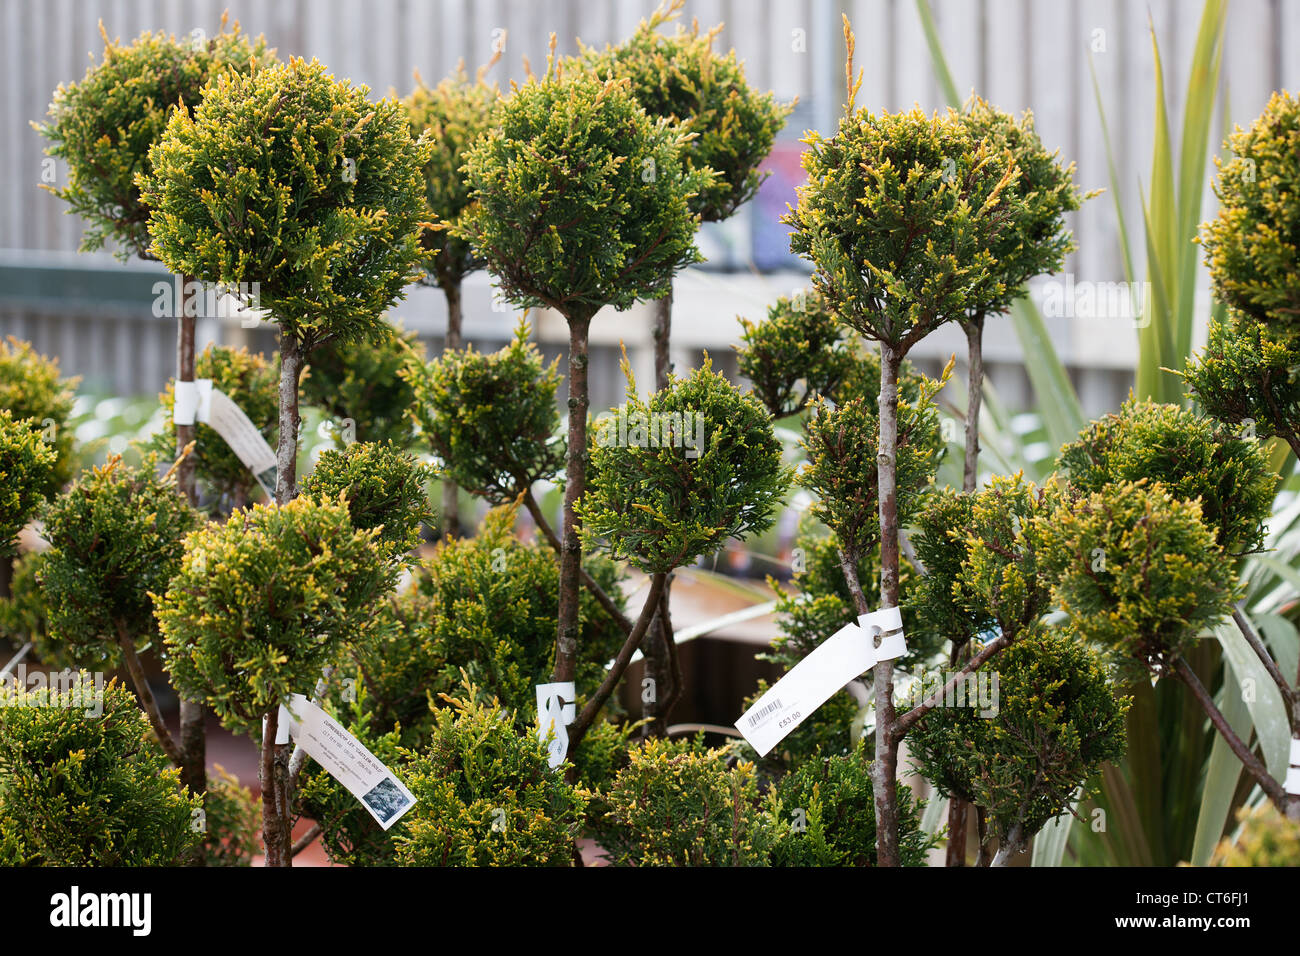 Young conifers (Cupressocyp. ley.'Castle Gold'), for sale in Garden Centre Scotland UK - Stock Image